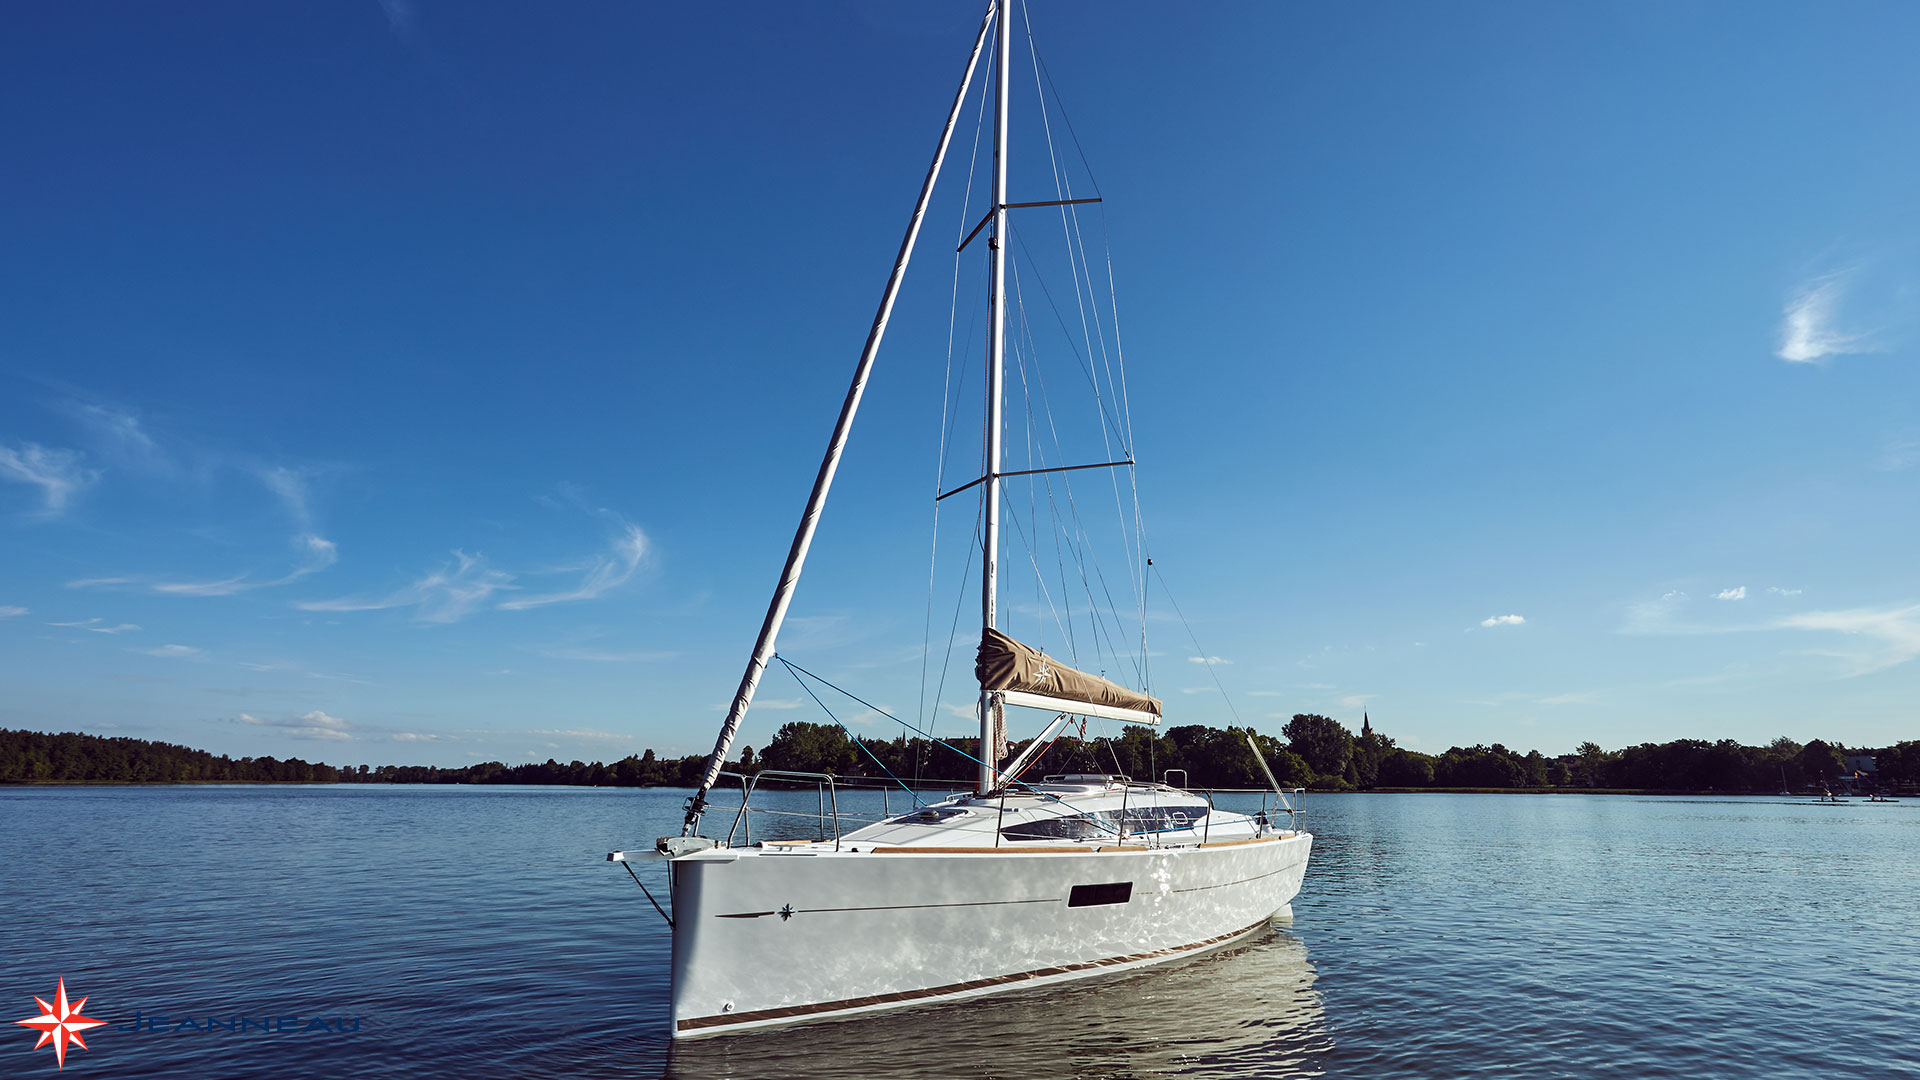 Jeanneau Sun Odyssey 319: Relax, go to it – full review